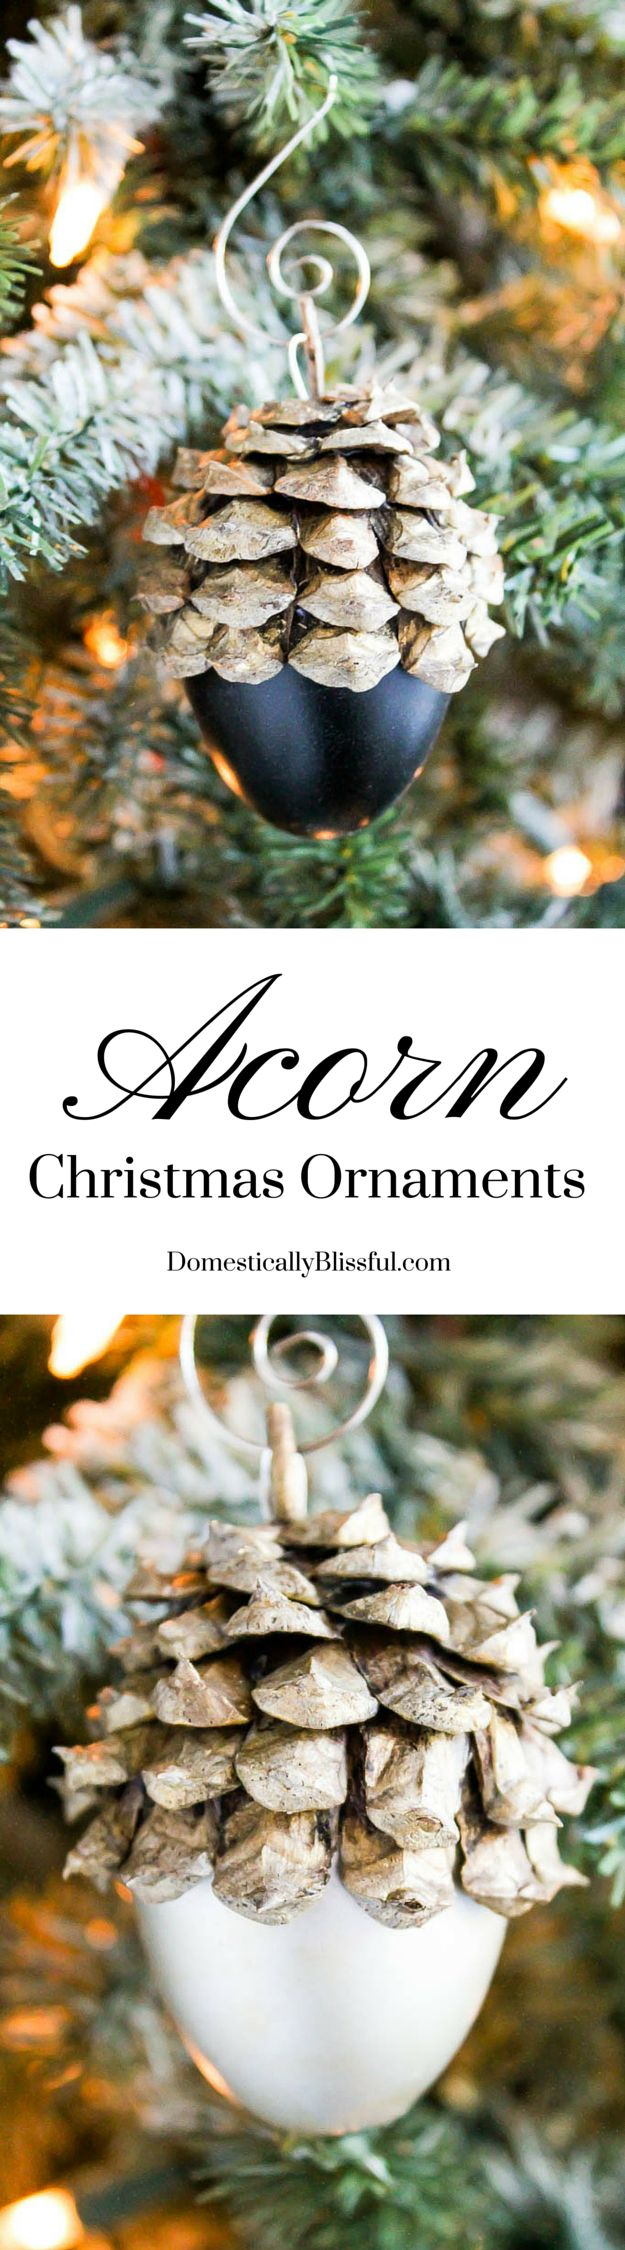 Yearly christmas ornaments - These Faux Acorn Christmas Ornaments Are Created From Plastic Easter Eggs Can Be Personalized To